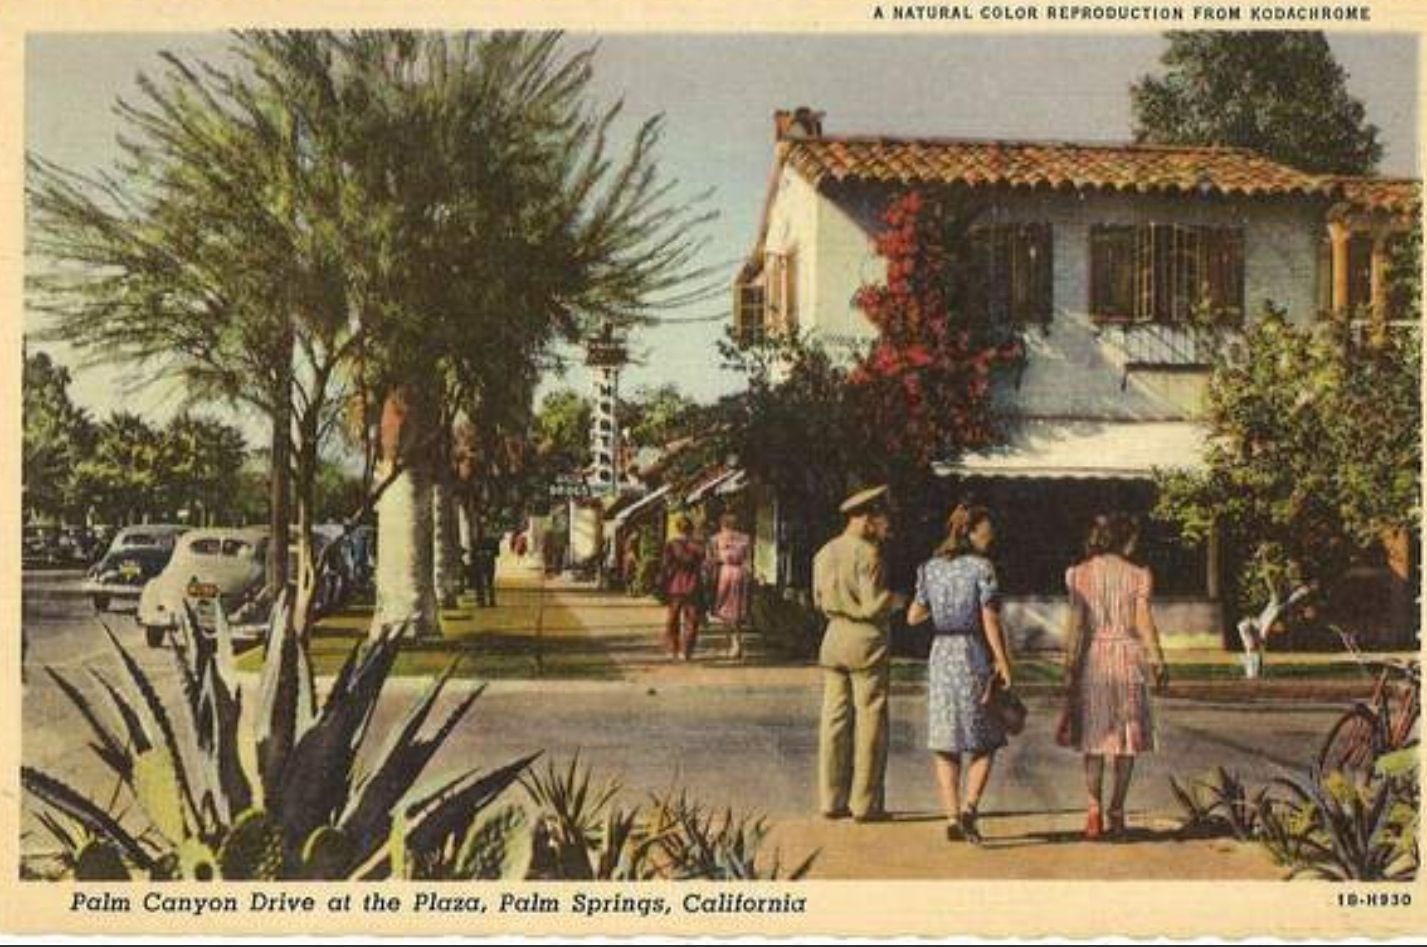 Palm Canyon Drive, Candy Store: 1945, shows Palm Canyon Drive in downtown Palm Springs. The building in the foreground is now the See's Candies store, and the Plaza Theater can be seen in the background.